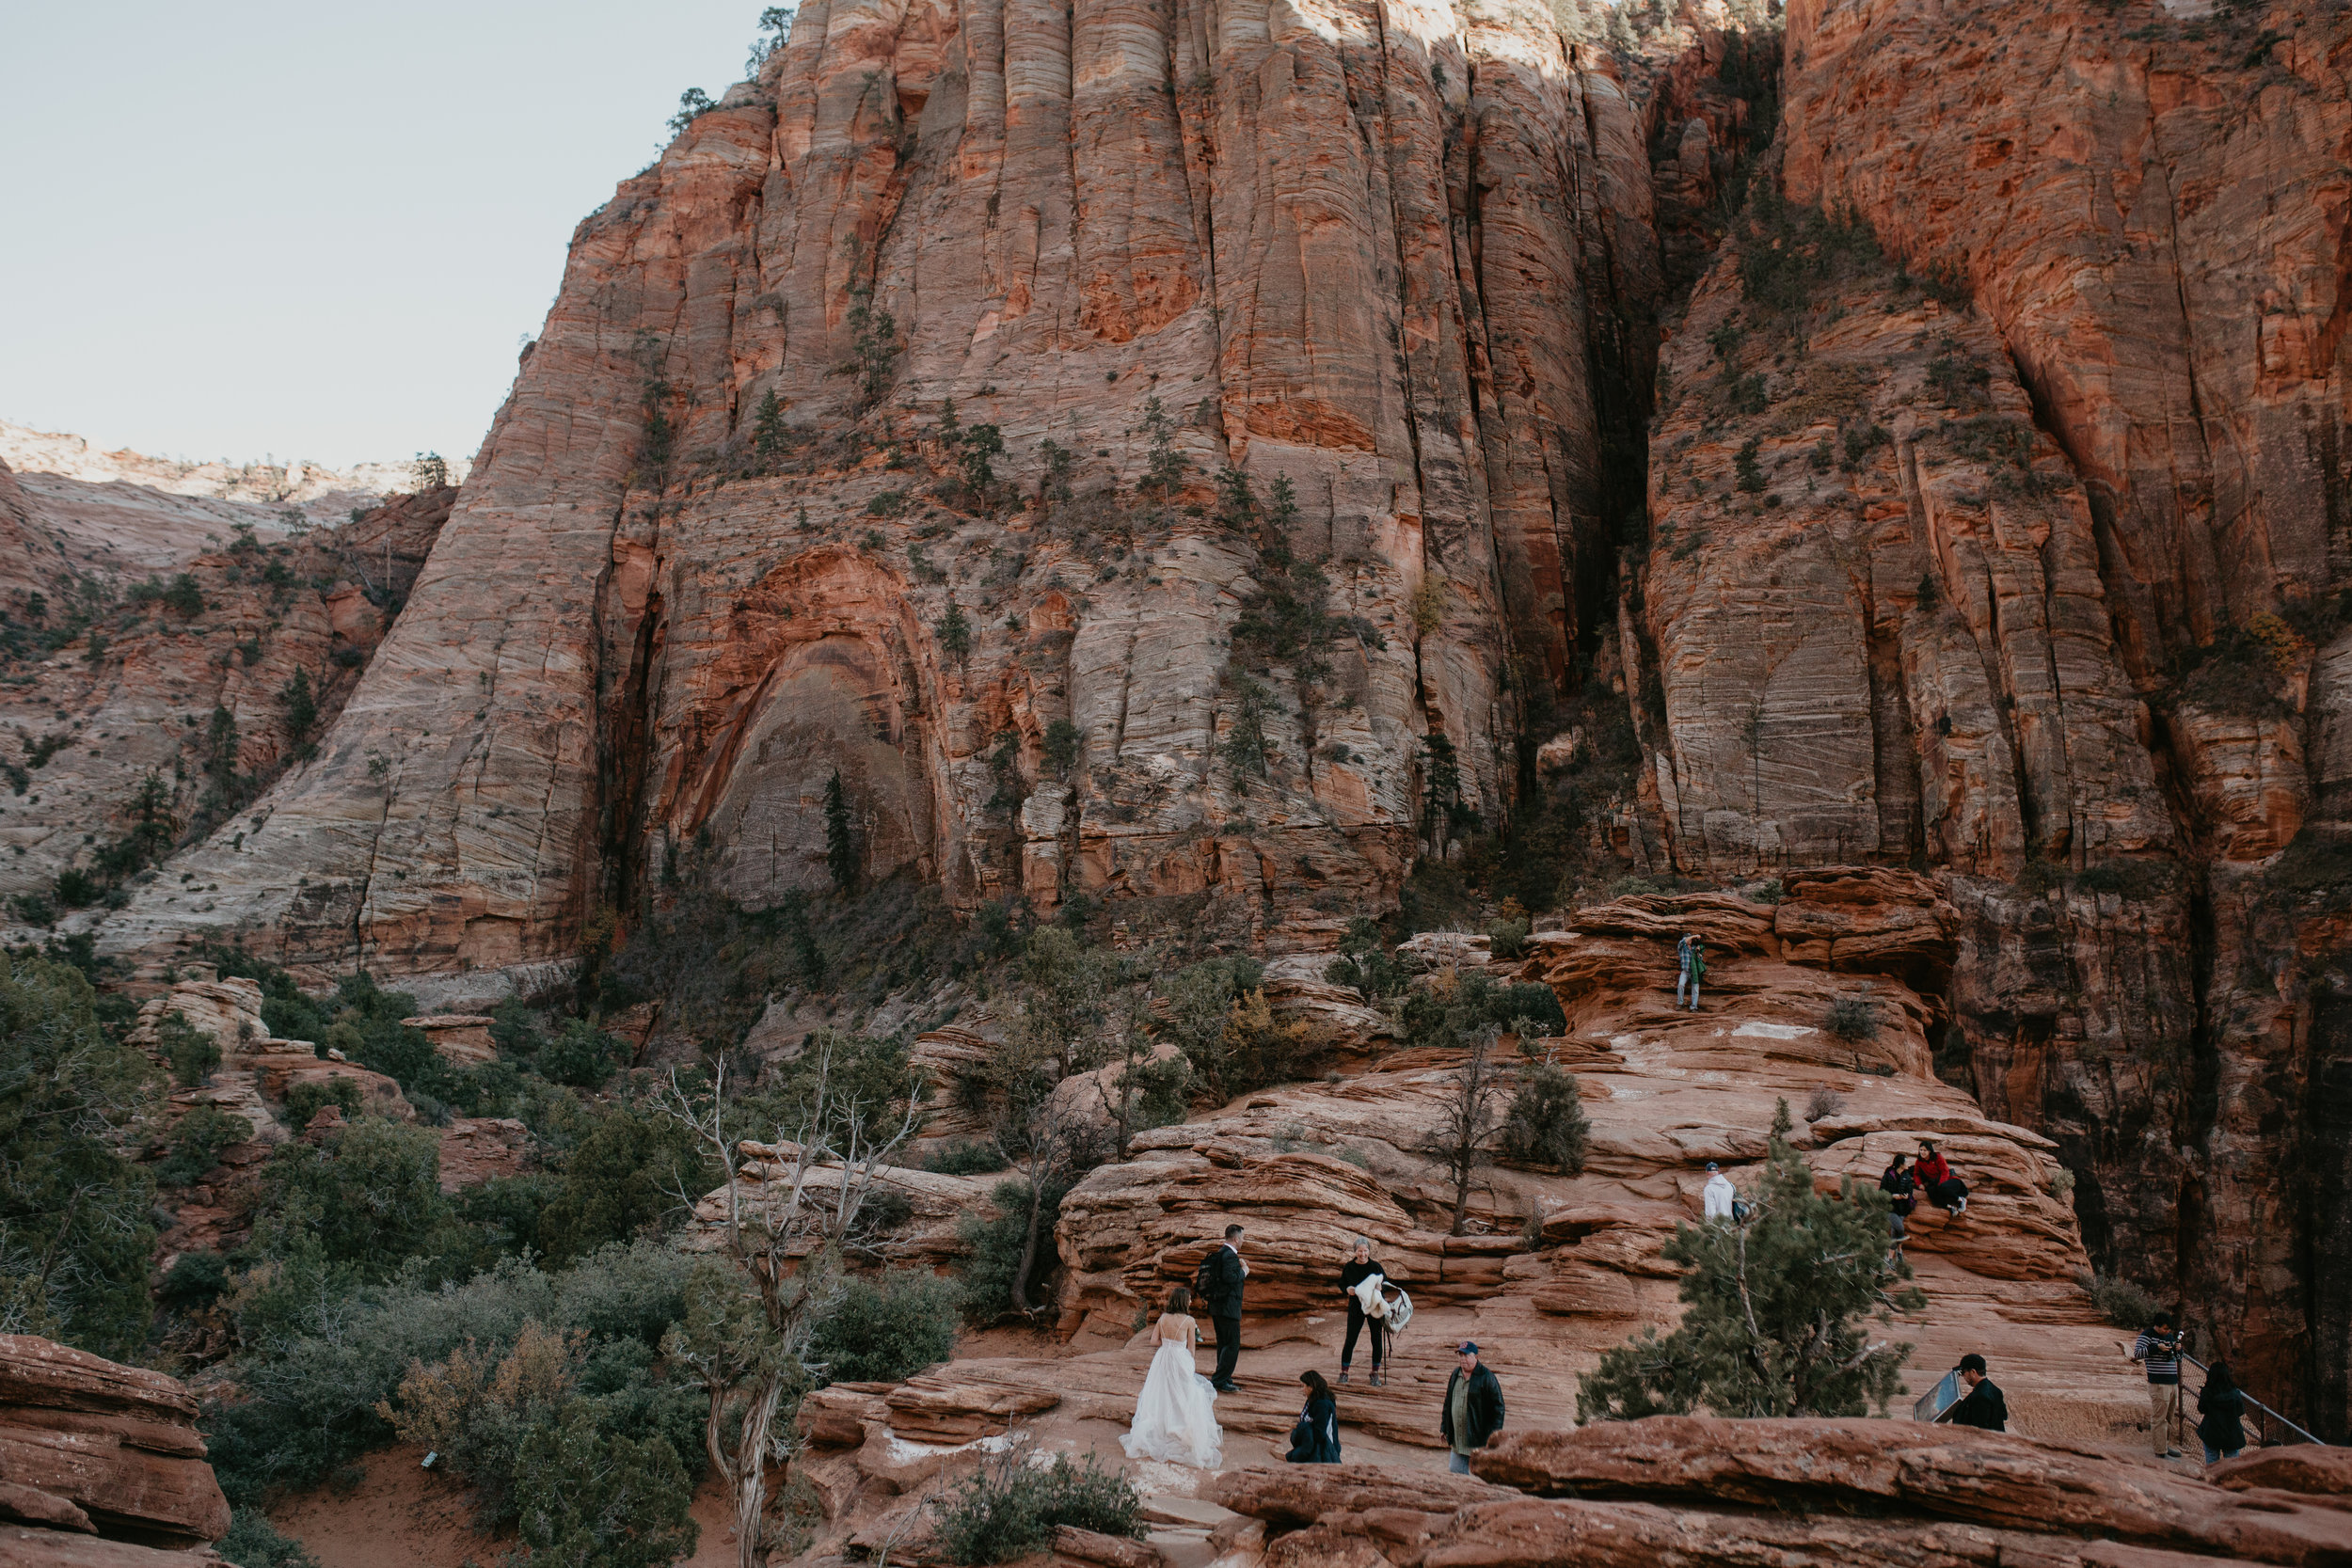 nicole-daacke-photography-zion-national-park-elopement-photographer-canyon-overlook-trail-elope-hiking-adventure-wedding-photos-fall-utah-red-rock-canyon-stgeorge-eloping-photographer-38.jpg